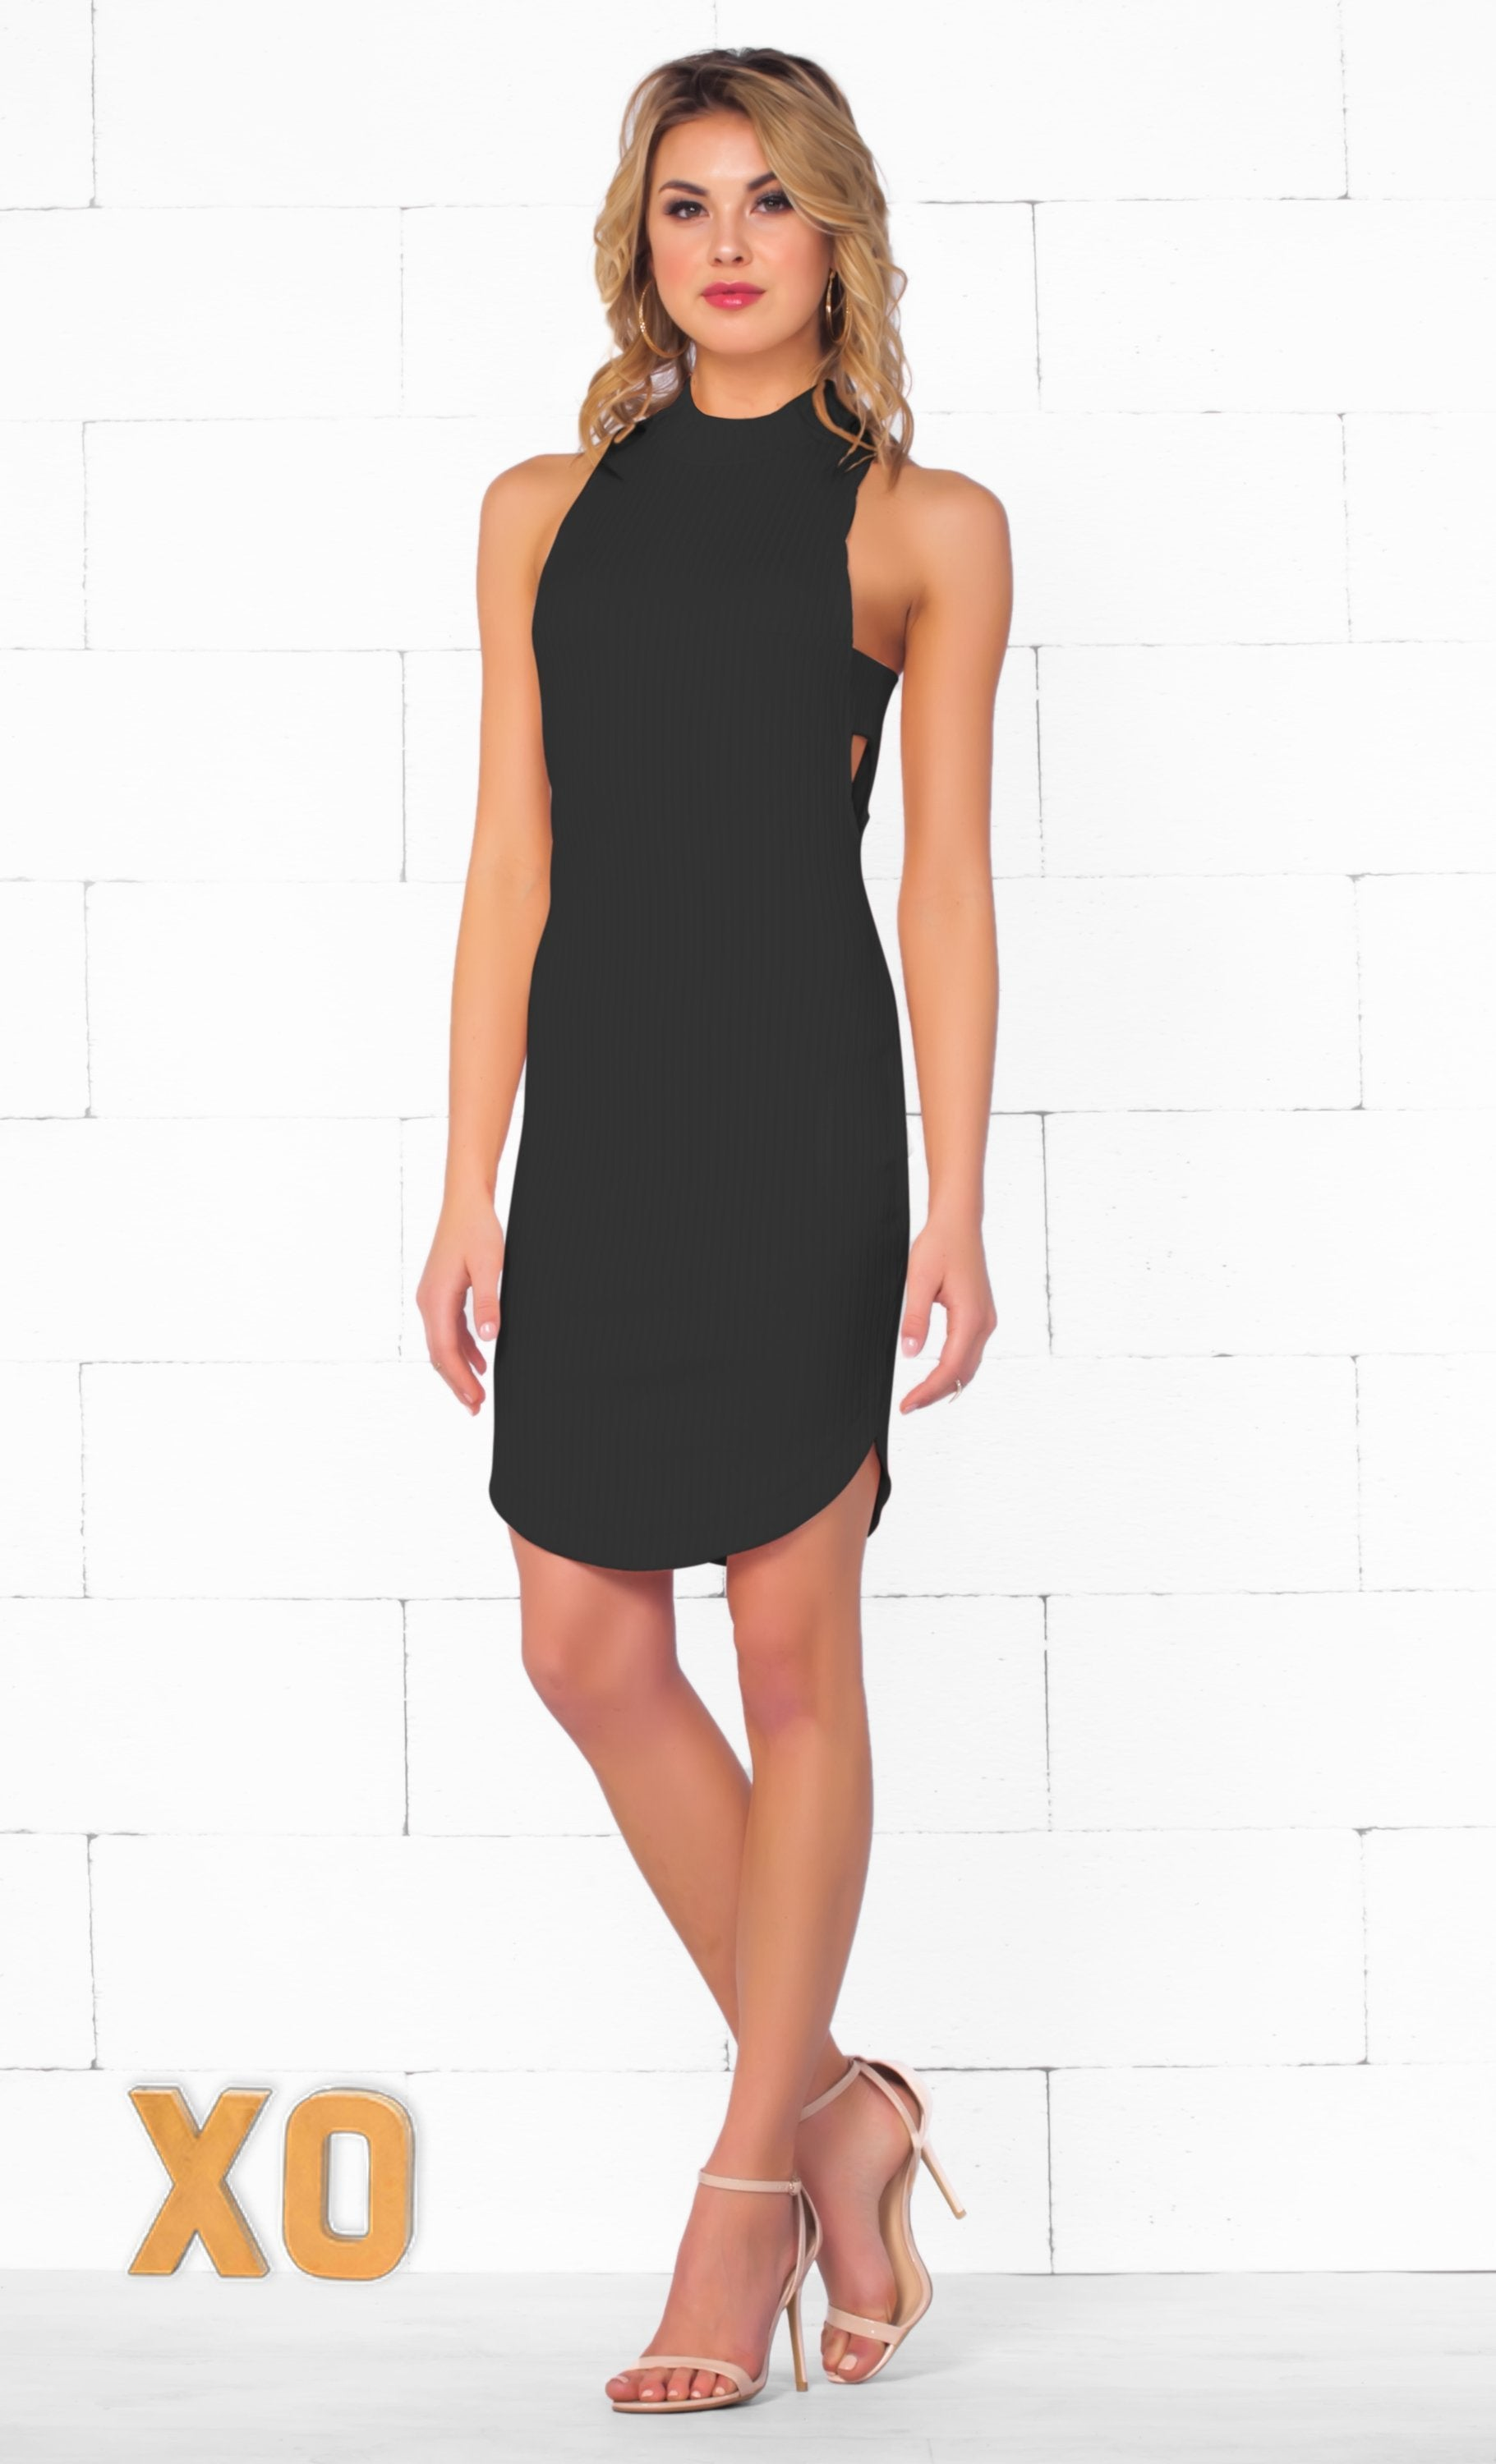 Indie XO Falling For You Black Sleeveless Ribbed Mock Neck Cut Out Bodycon Mini Dress - Just Ours! - Sold Out